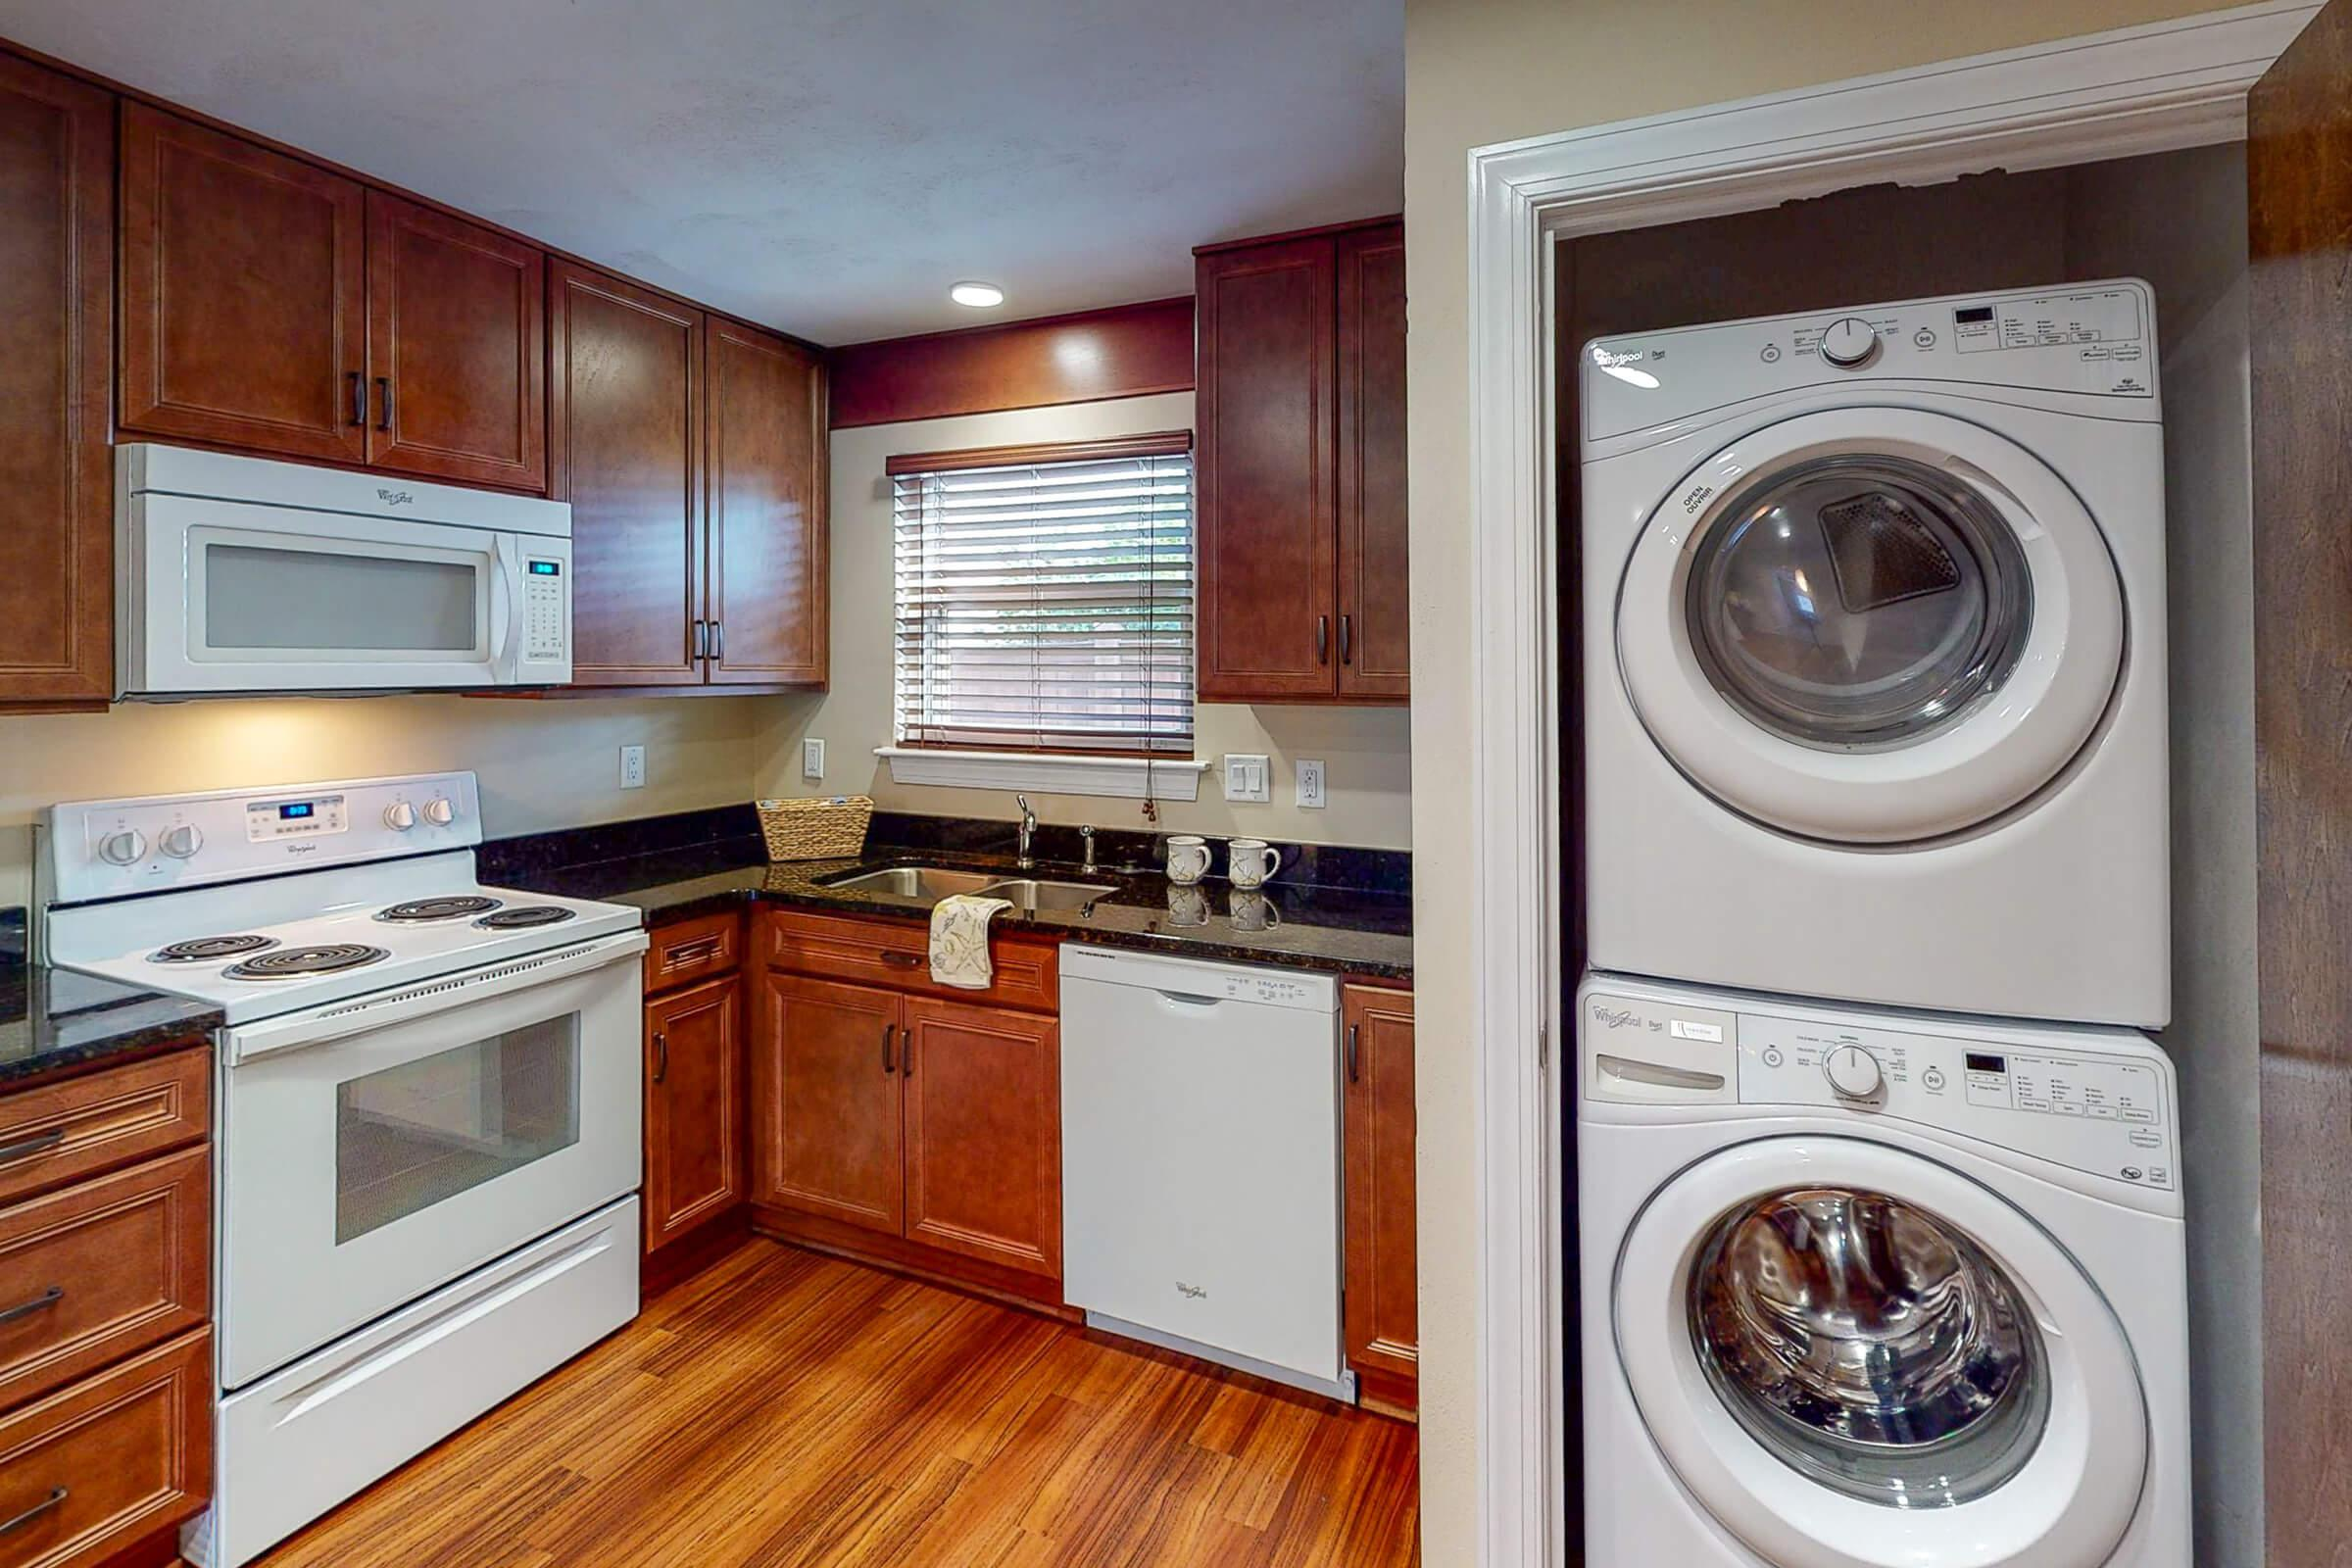 a kitchen with a stove and a microwave oven